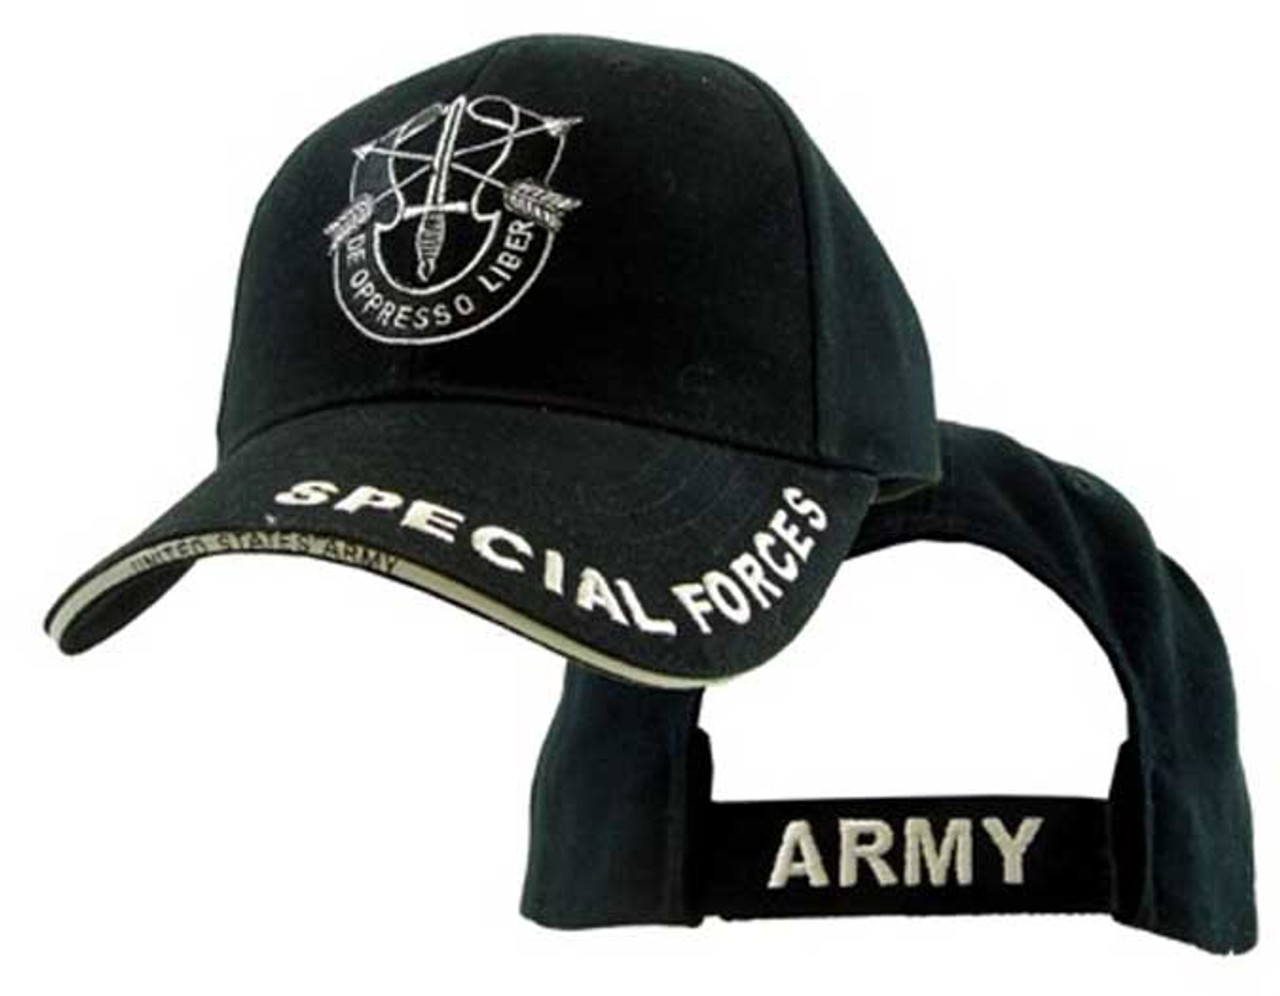 cae3c5a4e56 U army special forces with logo military hat baseball cap officially  licensed jpg 675x525 Army special